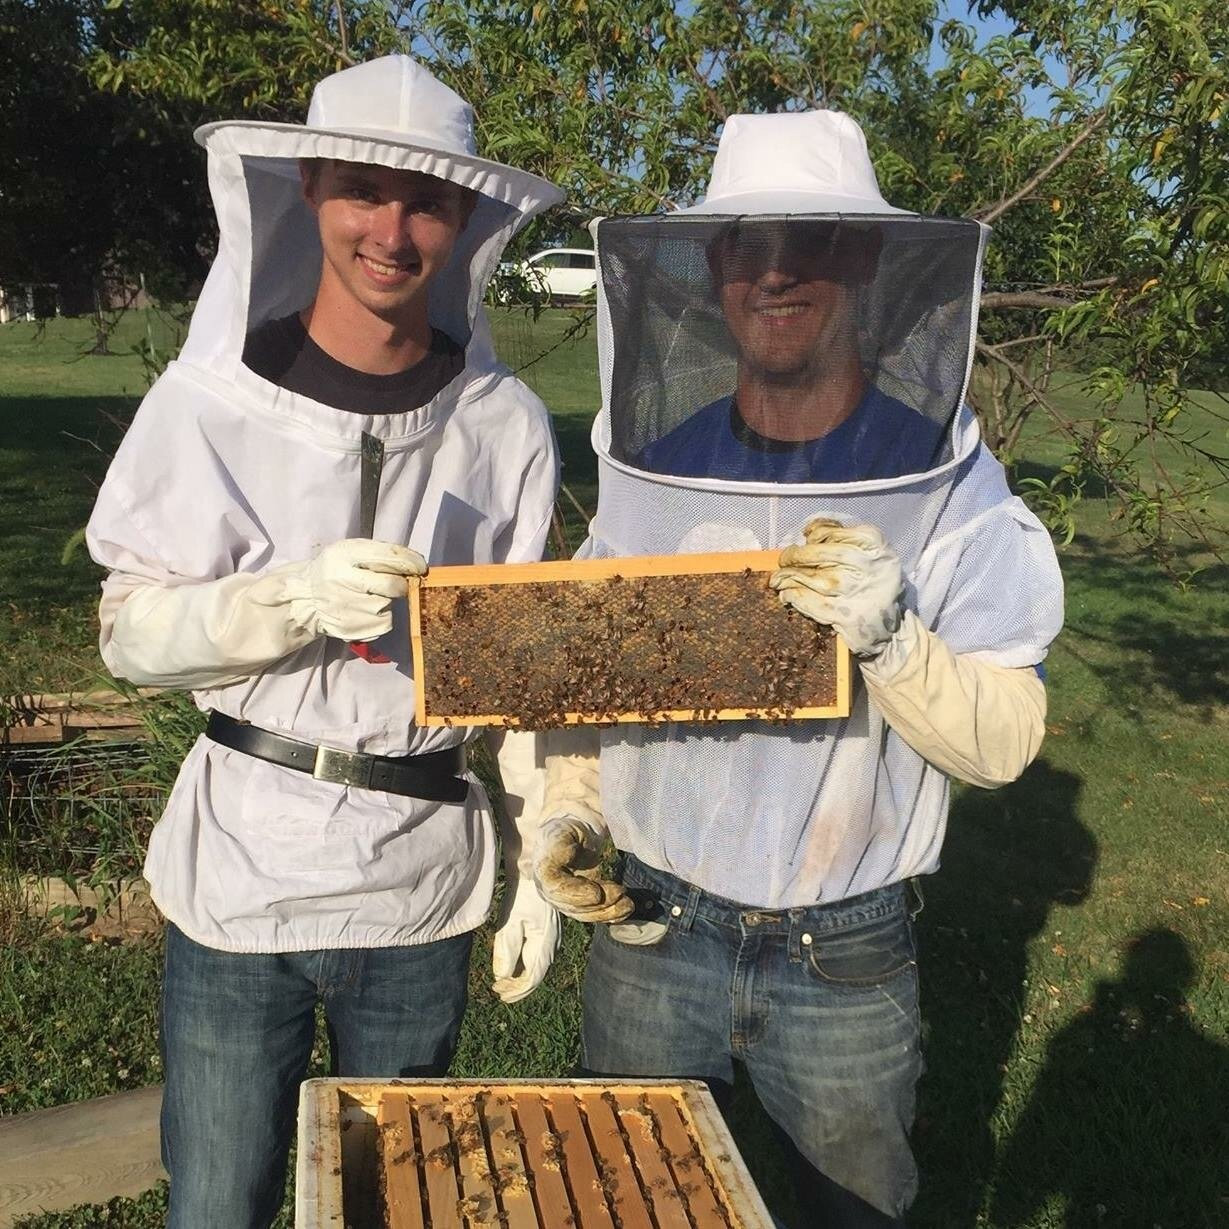 MD's Bees   Michael and Dylan are the beekeepers behind MD's Bees.  We wanted to raise the bees naturally and do our part to help the local pollinator population, Our honey is raw out of the hive, and poured through a large sieve to allow the pollen to remain in the jar. We also have comb honey with chunks of honey comb straight from the hive!